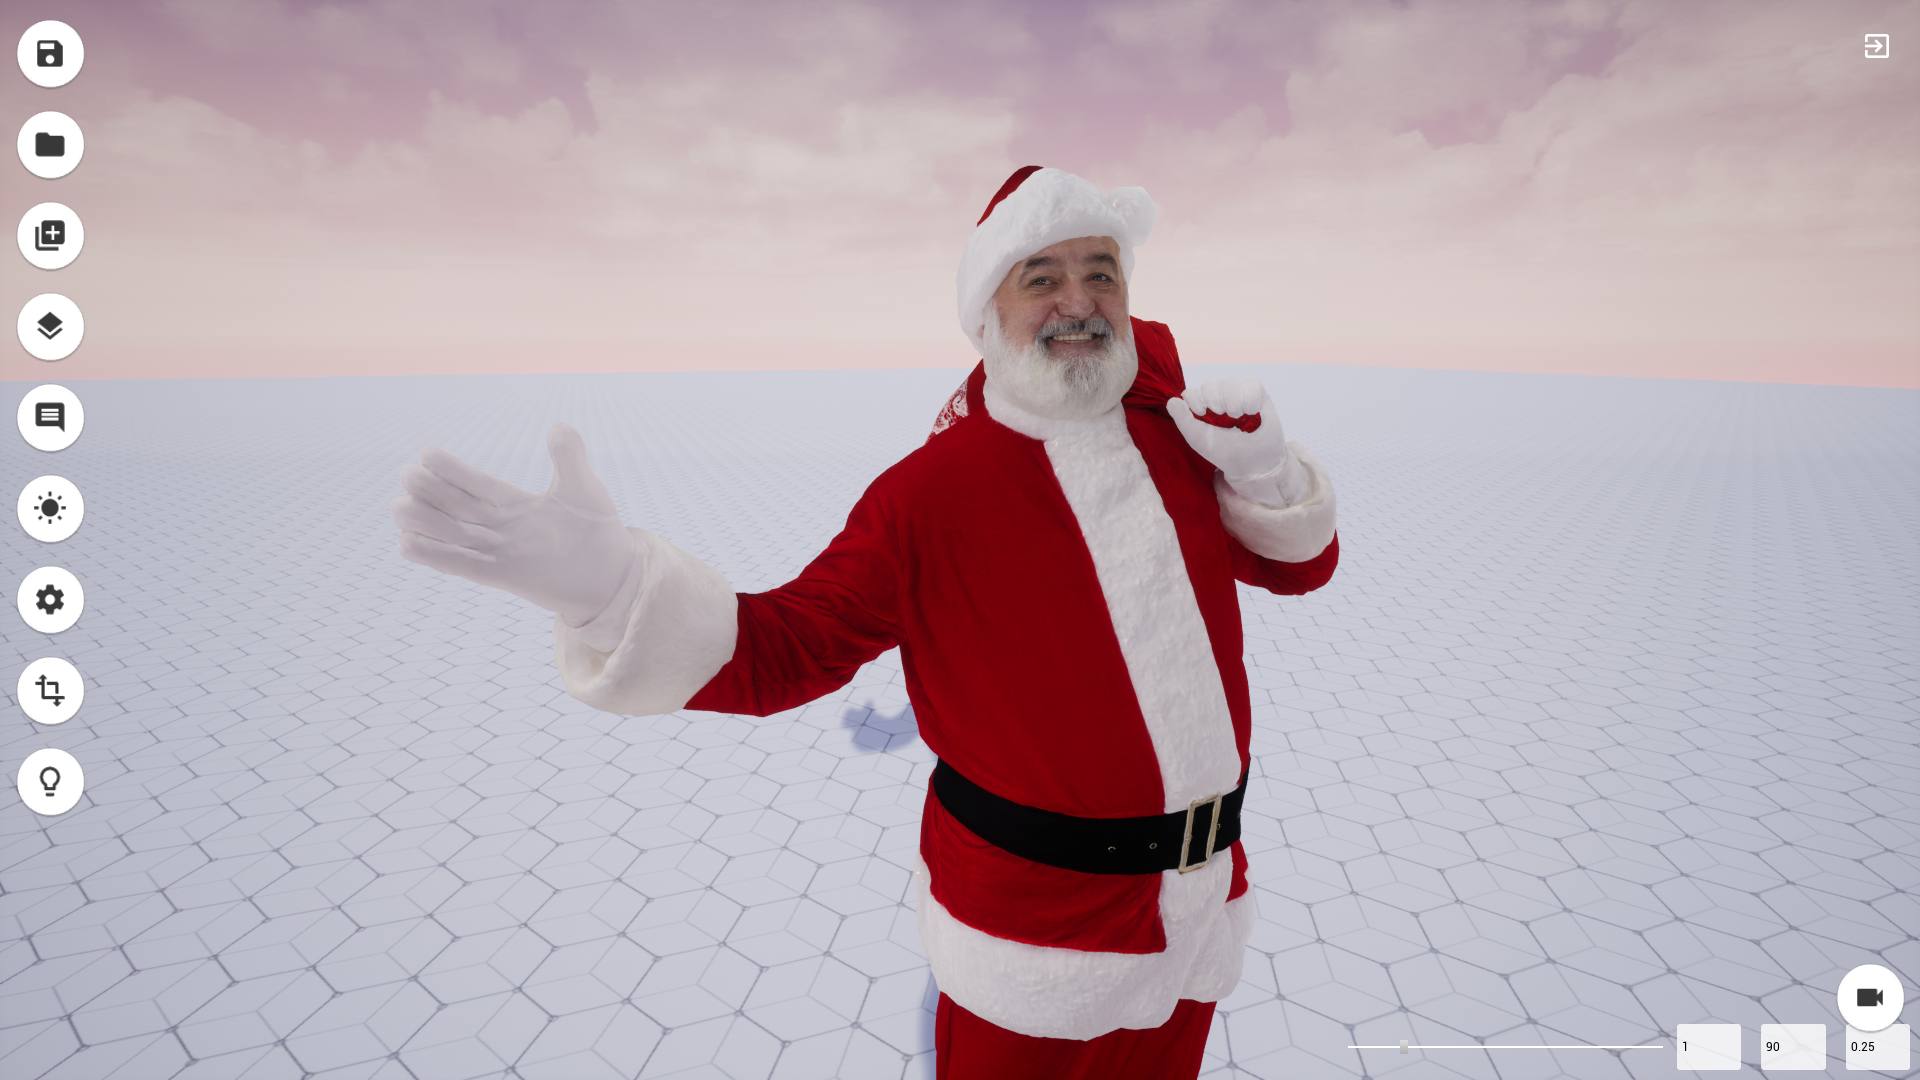 8k 3d model with realistic, photo-scanned textures to AR & VR in 3 minutes (Xmas edition)